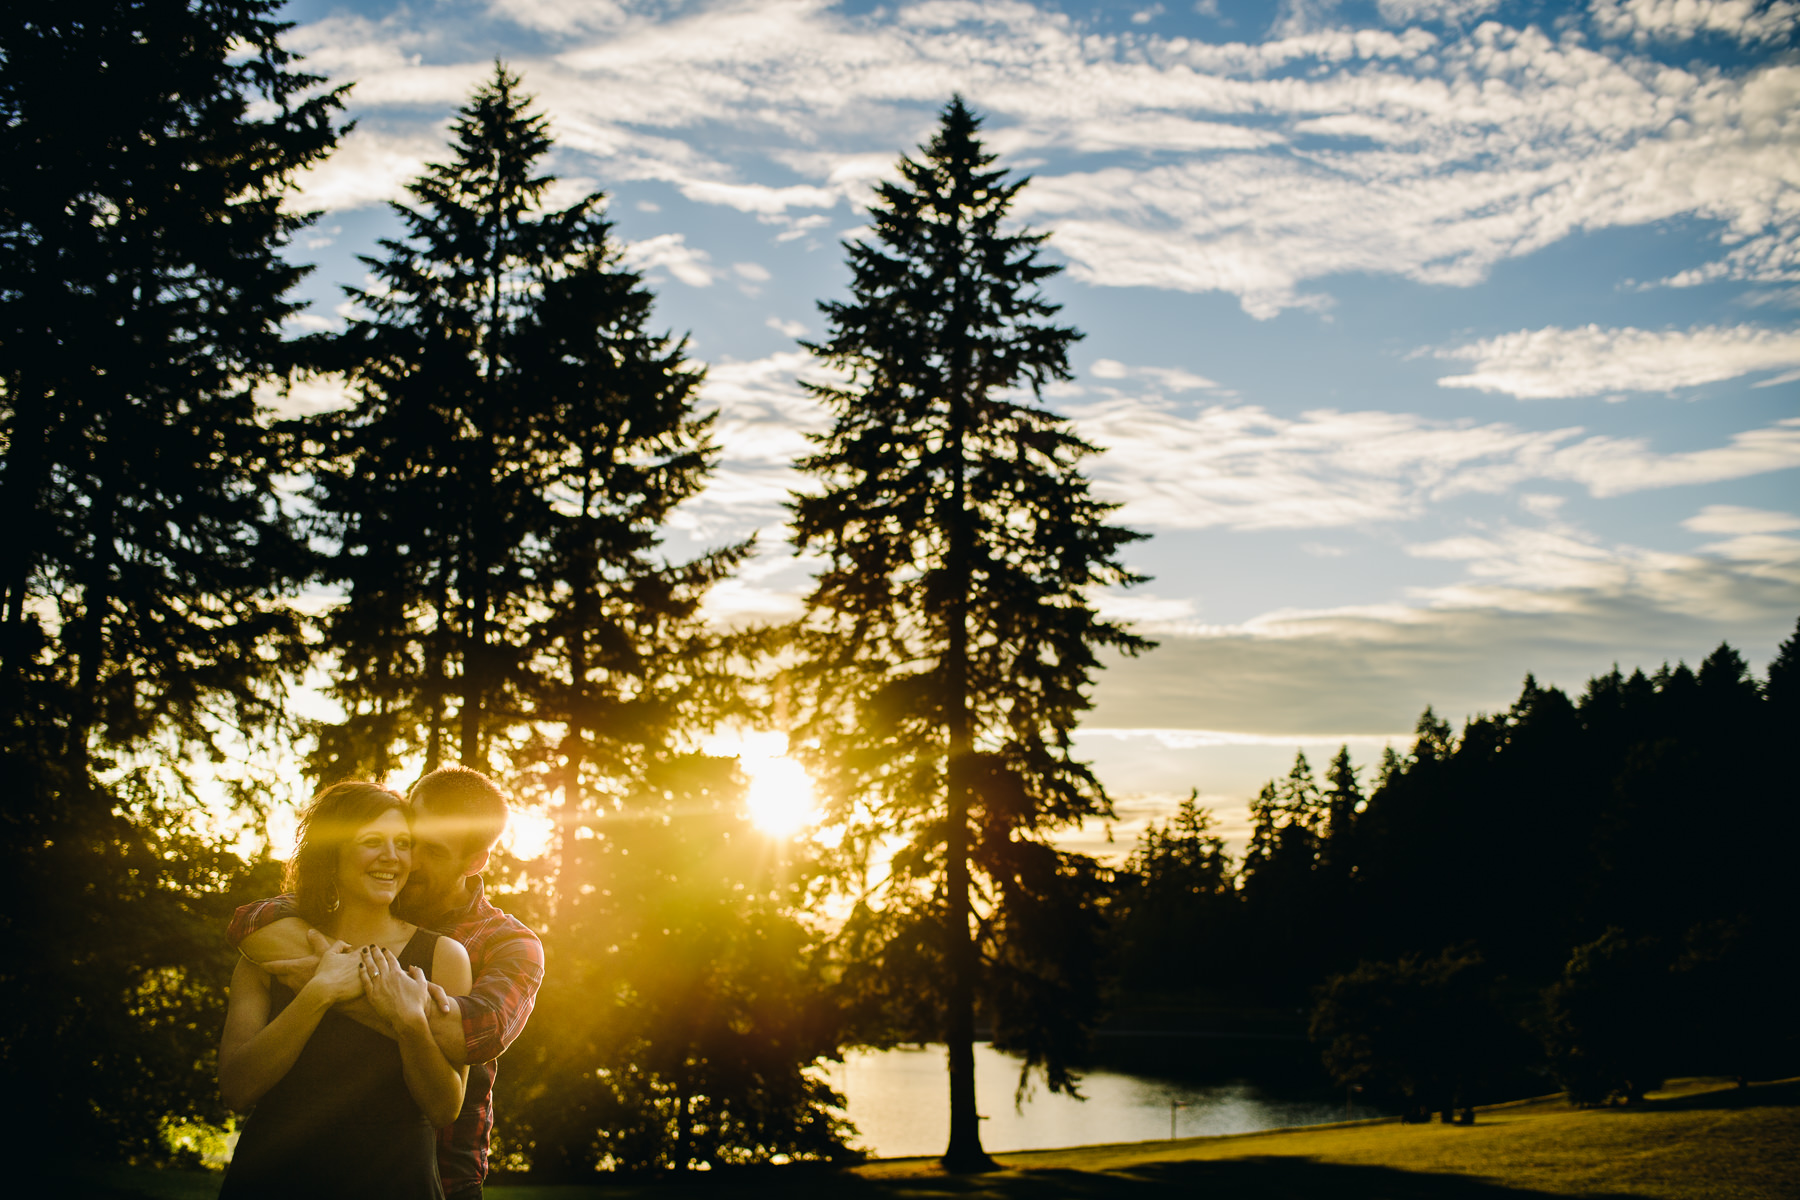 seattle-wedding-photographer-engaement-22